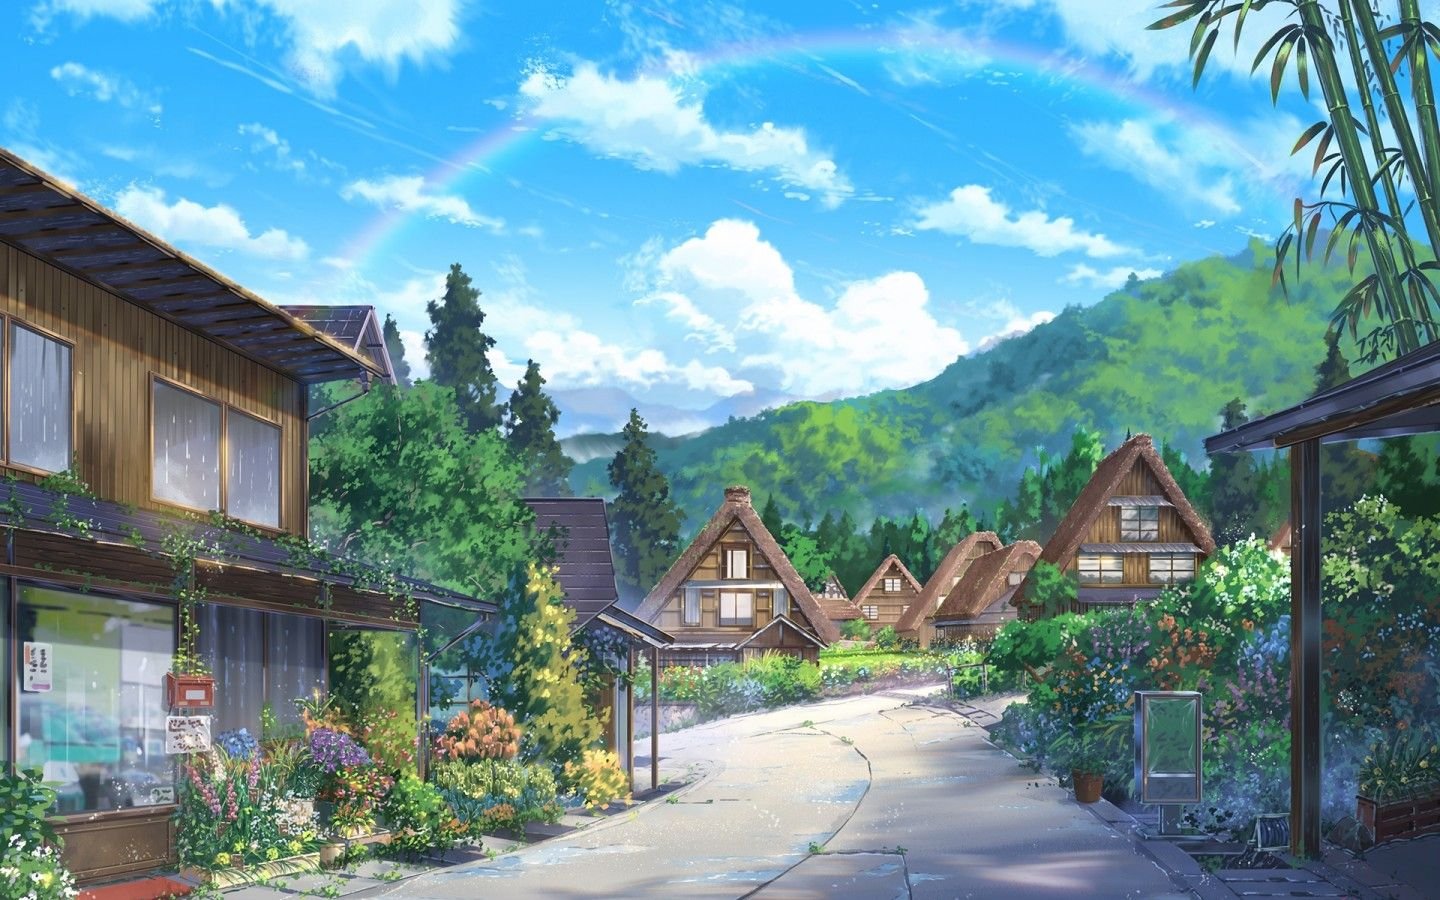 1440x900 Download 1440x900 Anime Landscape, Houses, Scenic, Clouds, Nature ...